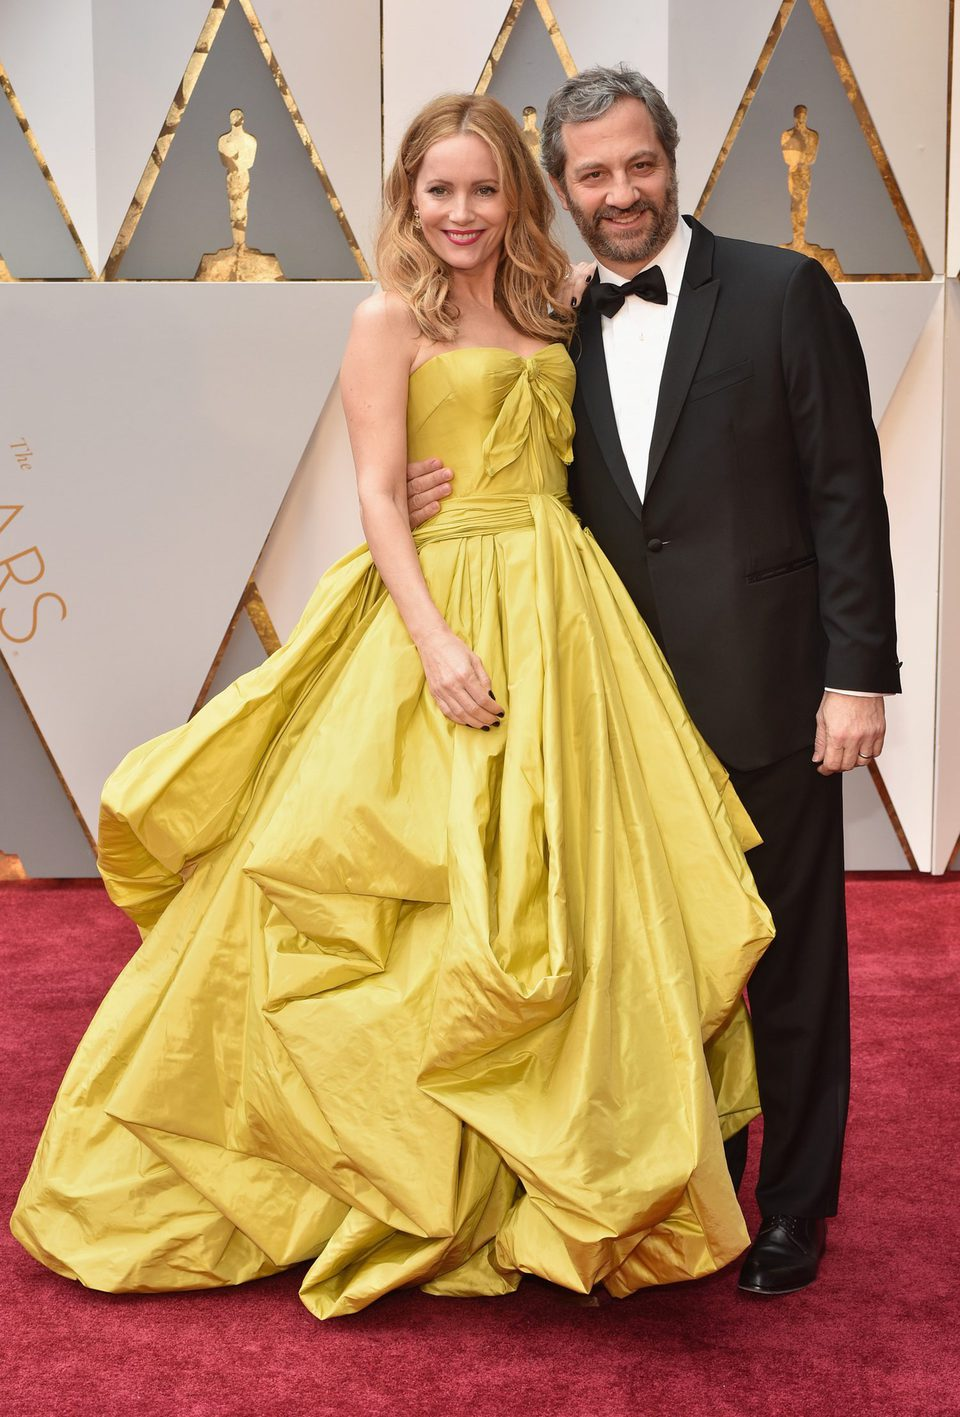 Leslie Mann and Judd Apatow at the 2017 Oscars red carpet